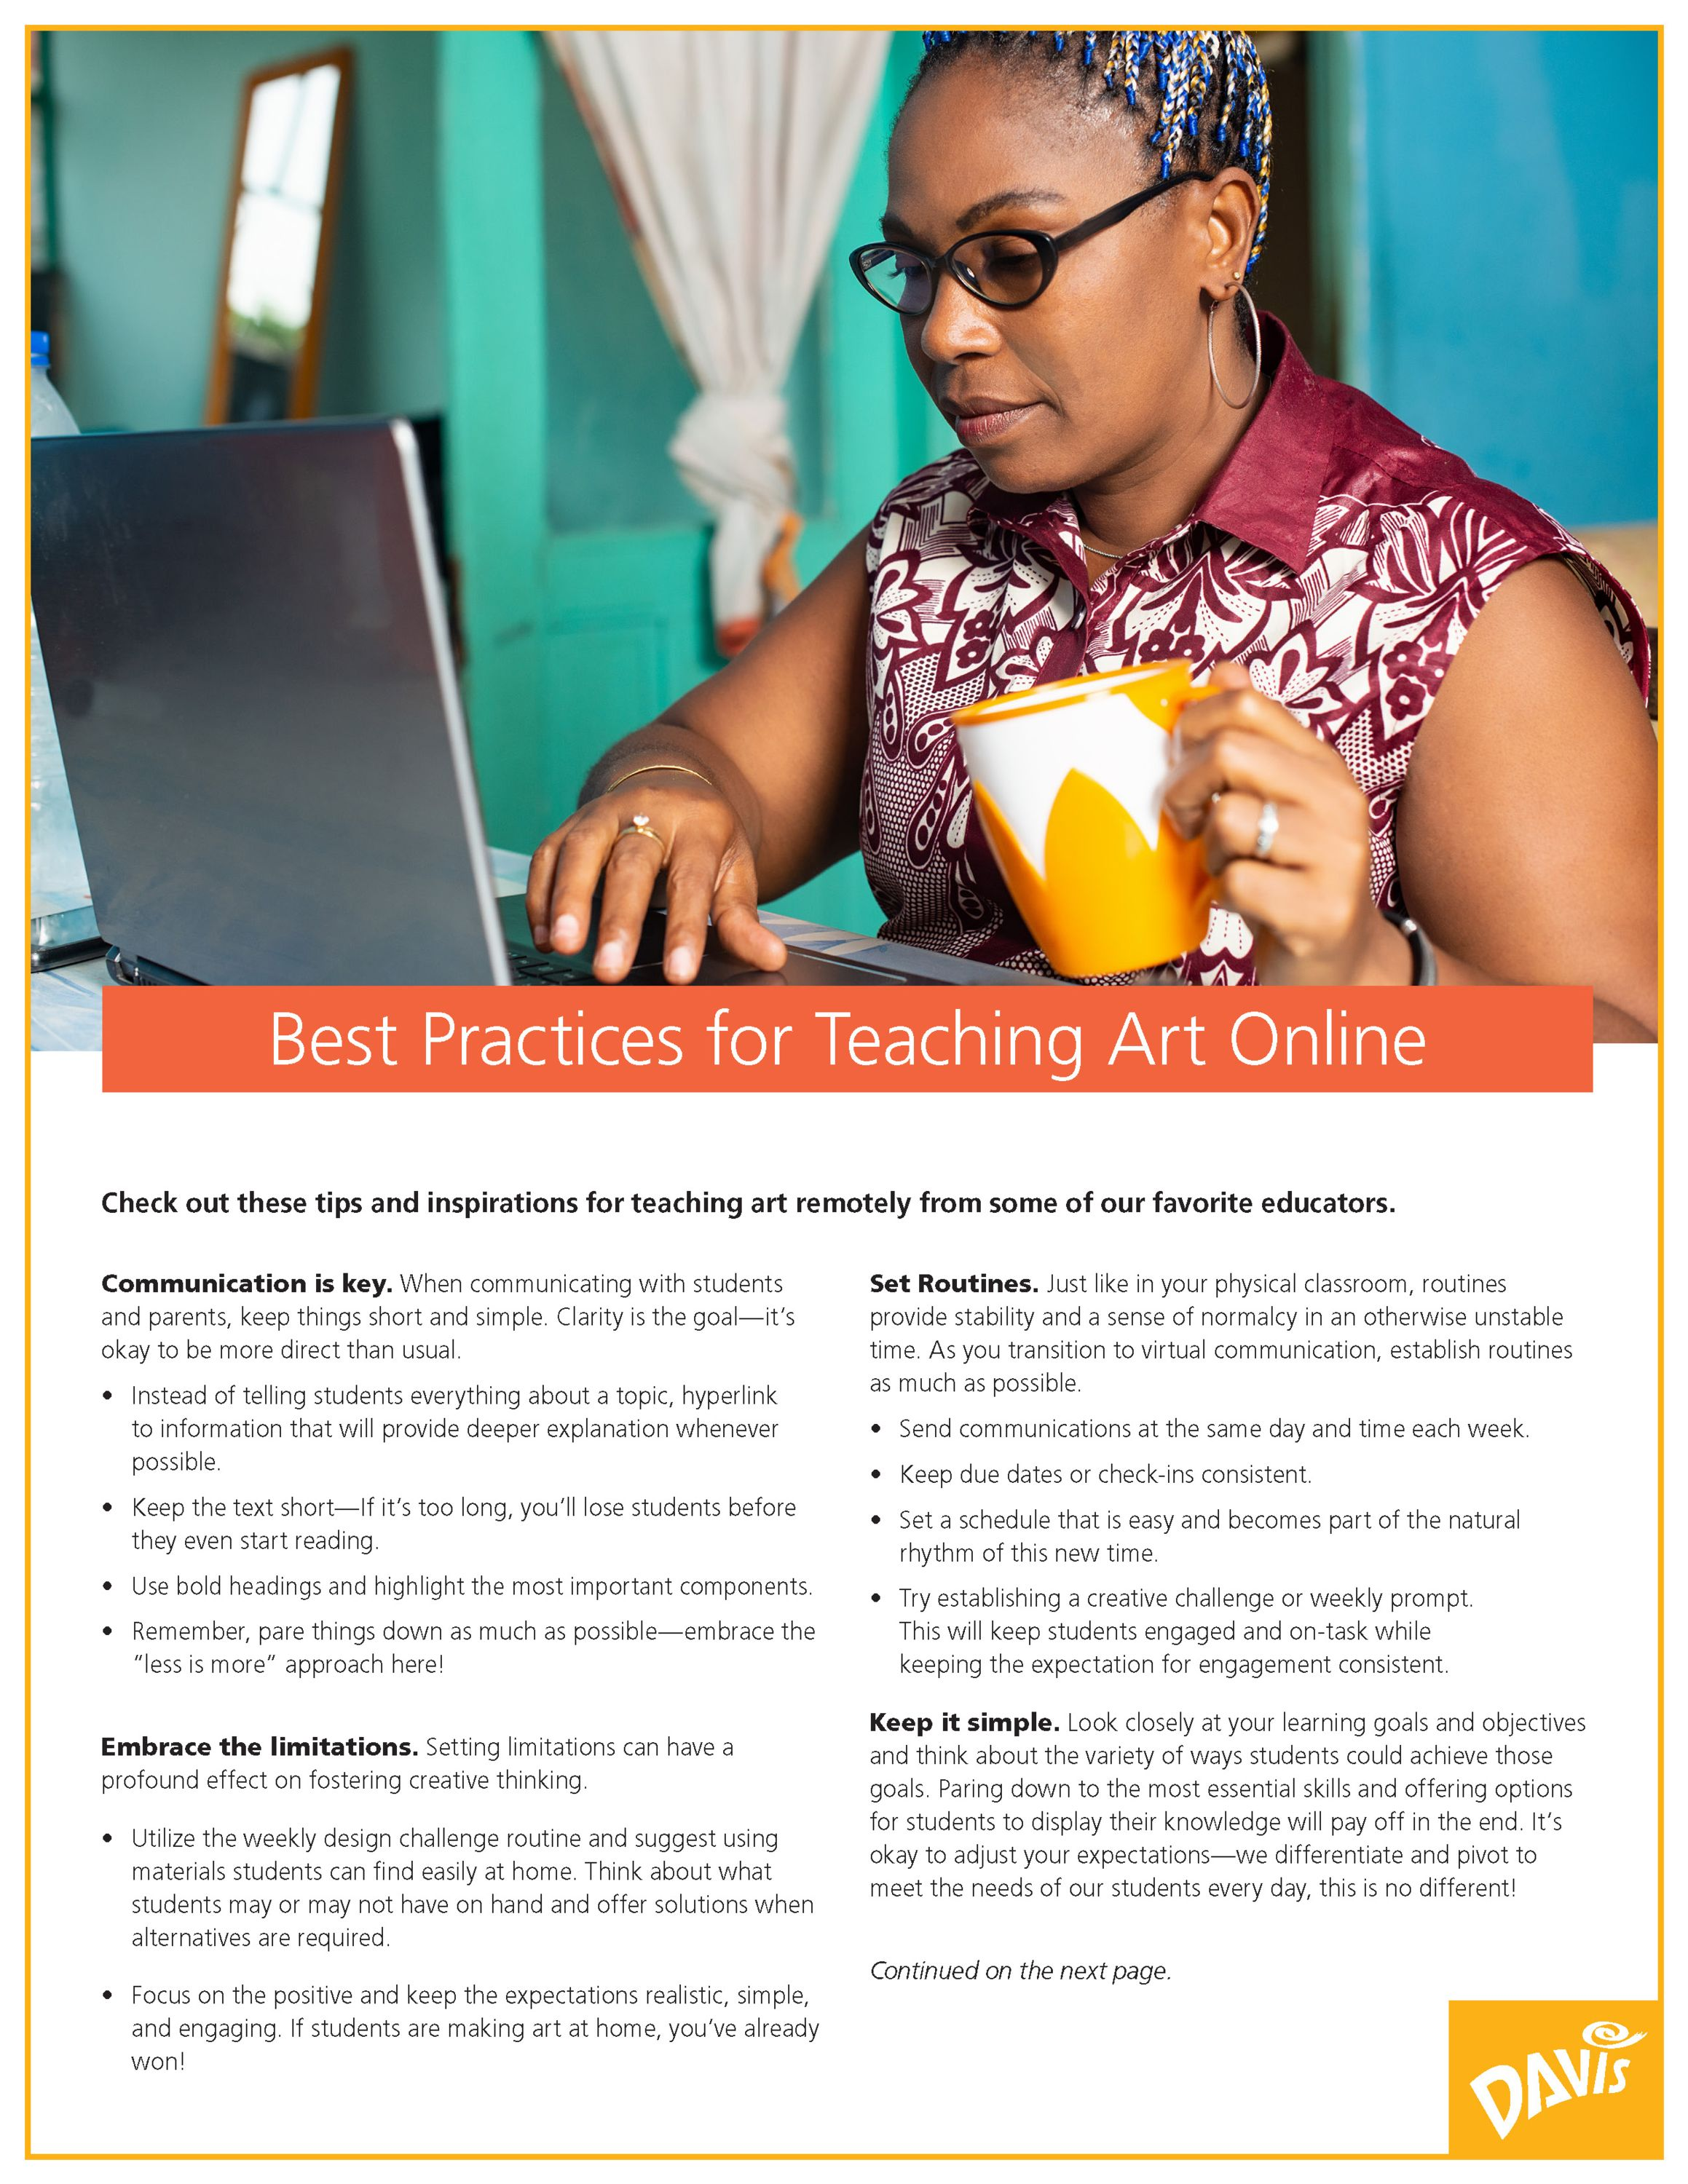 Best Practices for Teaching Art Online